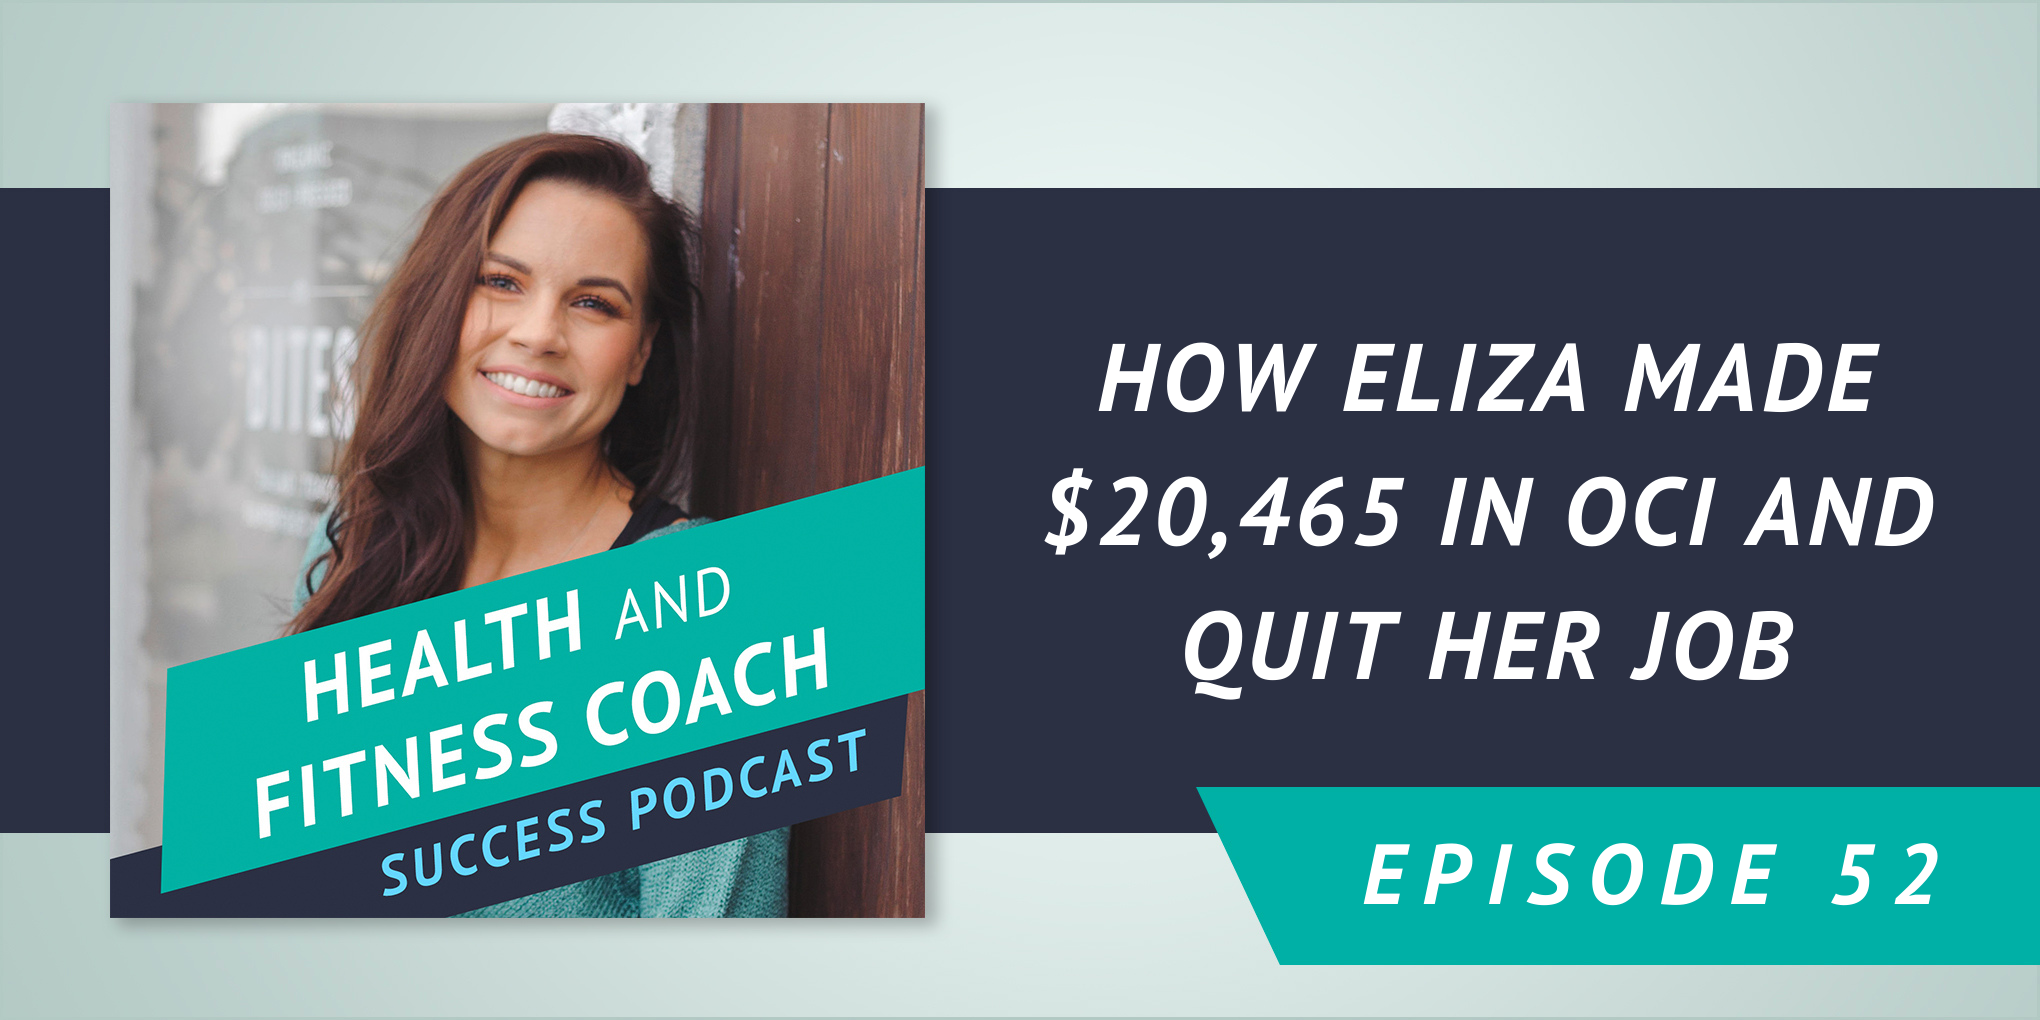 How Eliza Made $20,465 in OCI and Quit Her Job